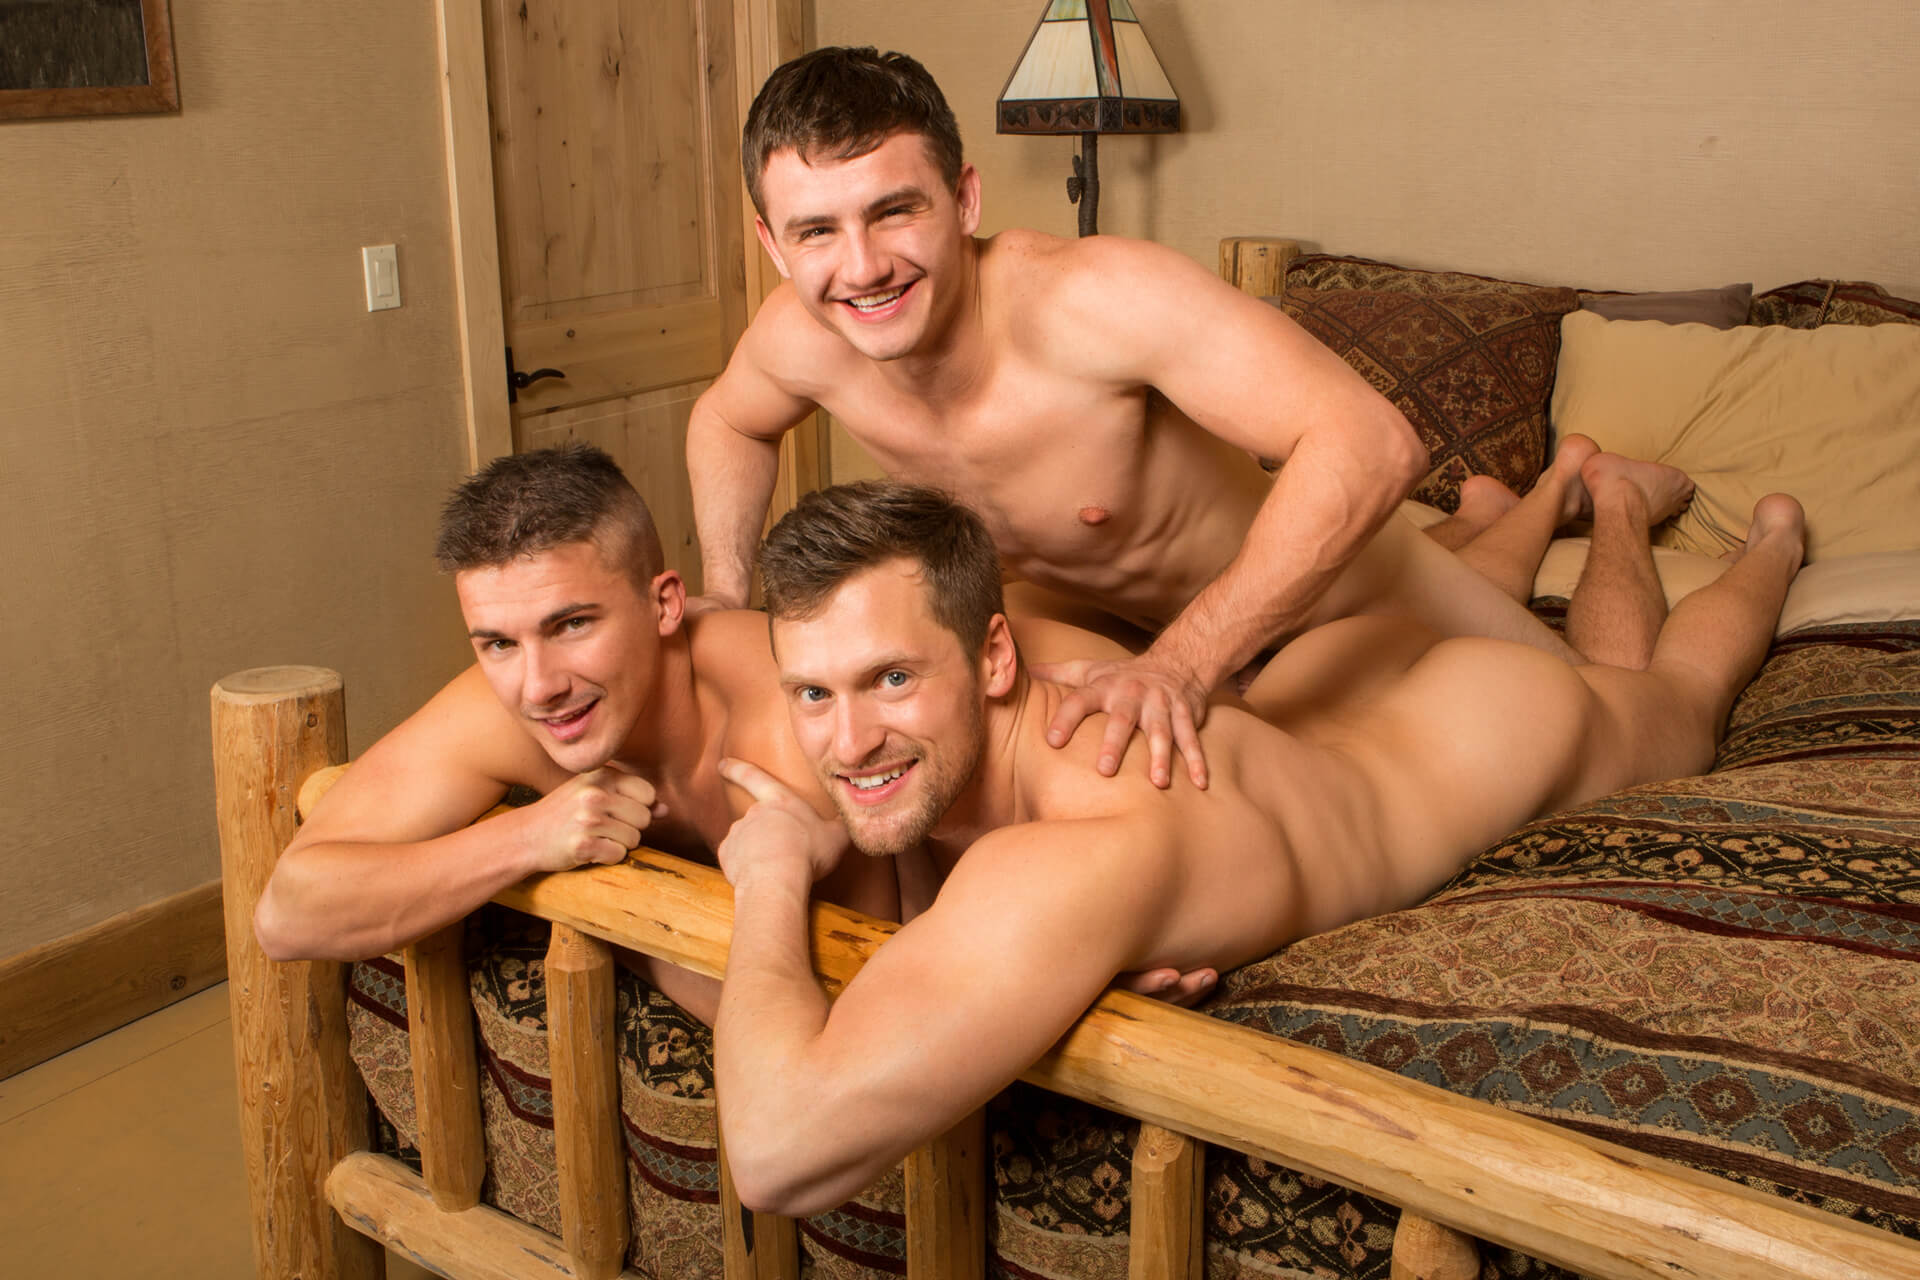 gay porn of the day